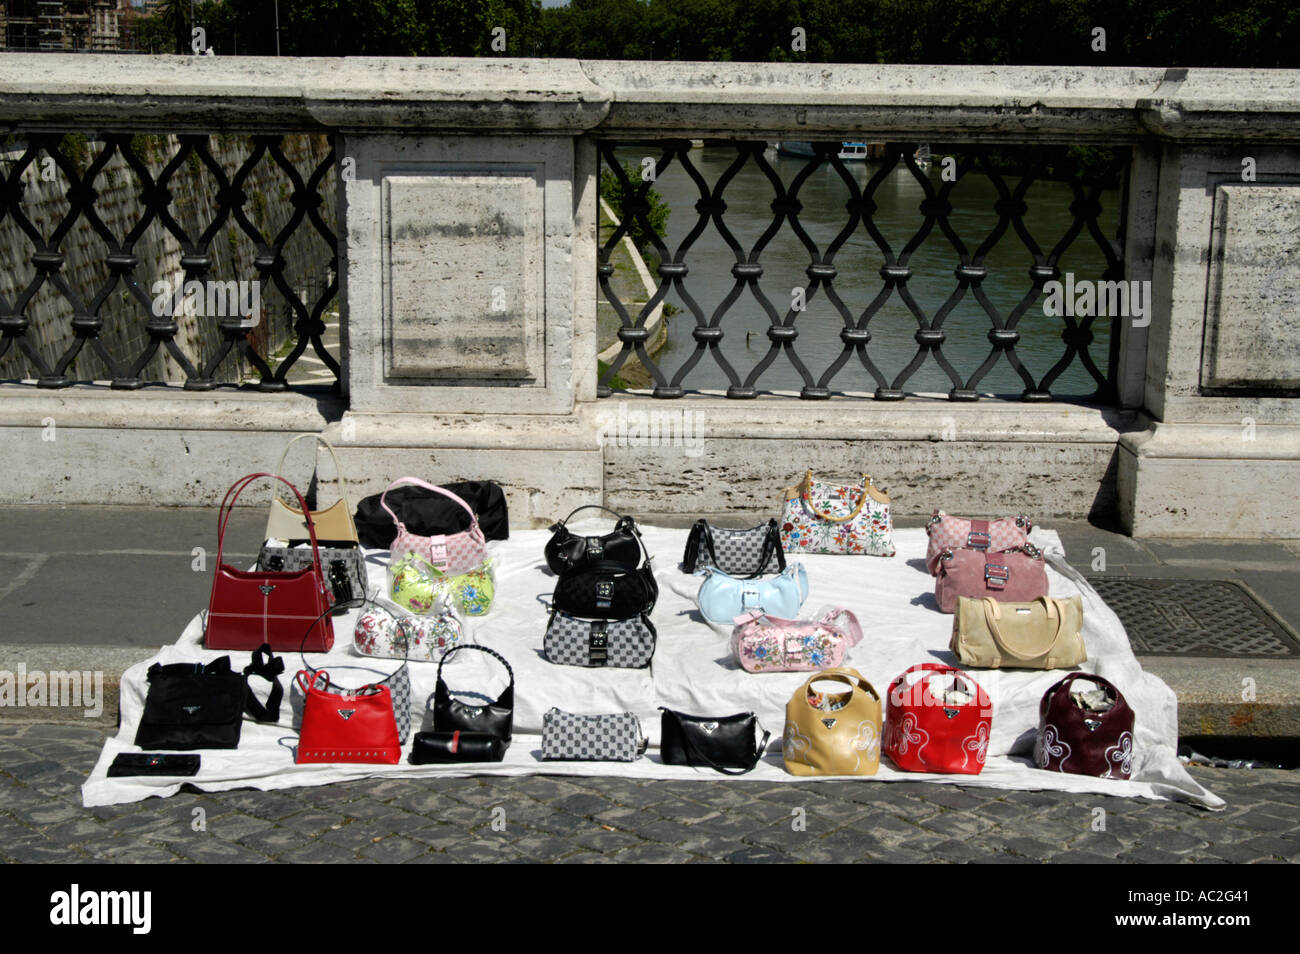 5a056d066f Fake designer handbags sold in the street, Rome, Italy - Stock Image